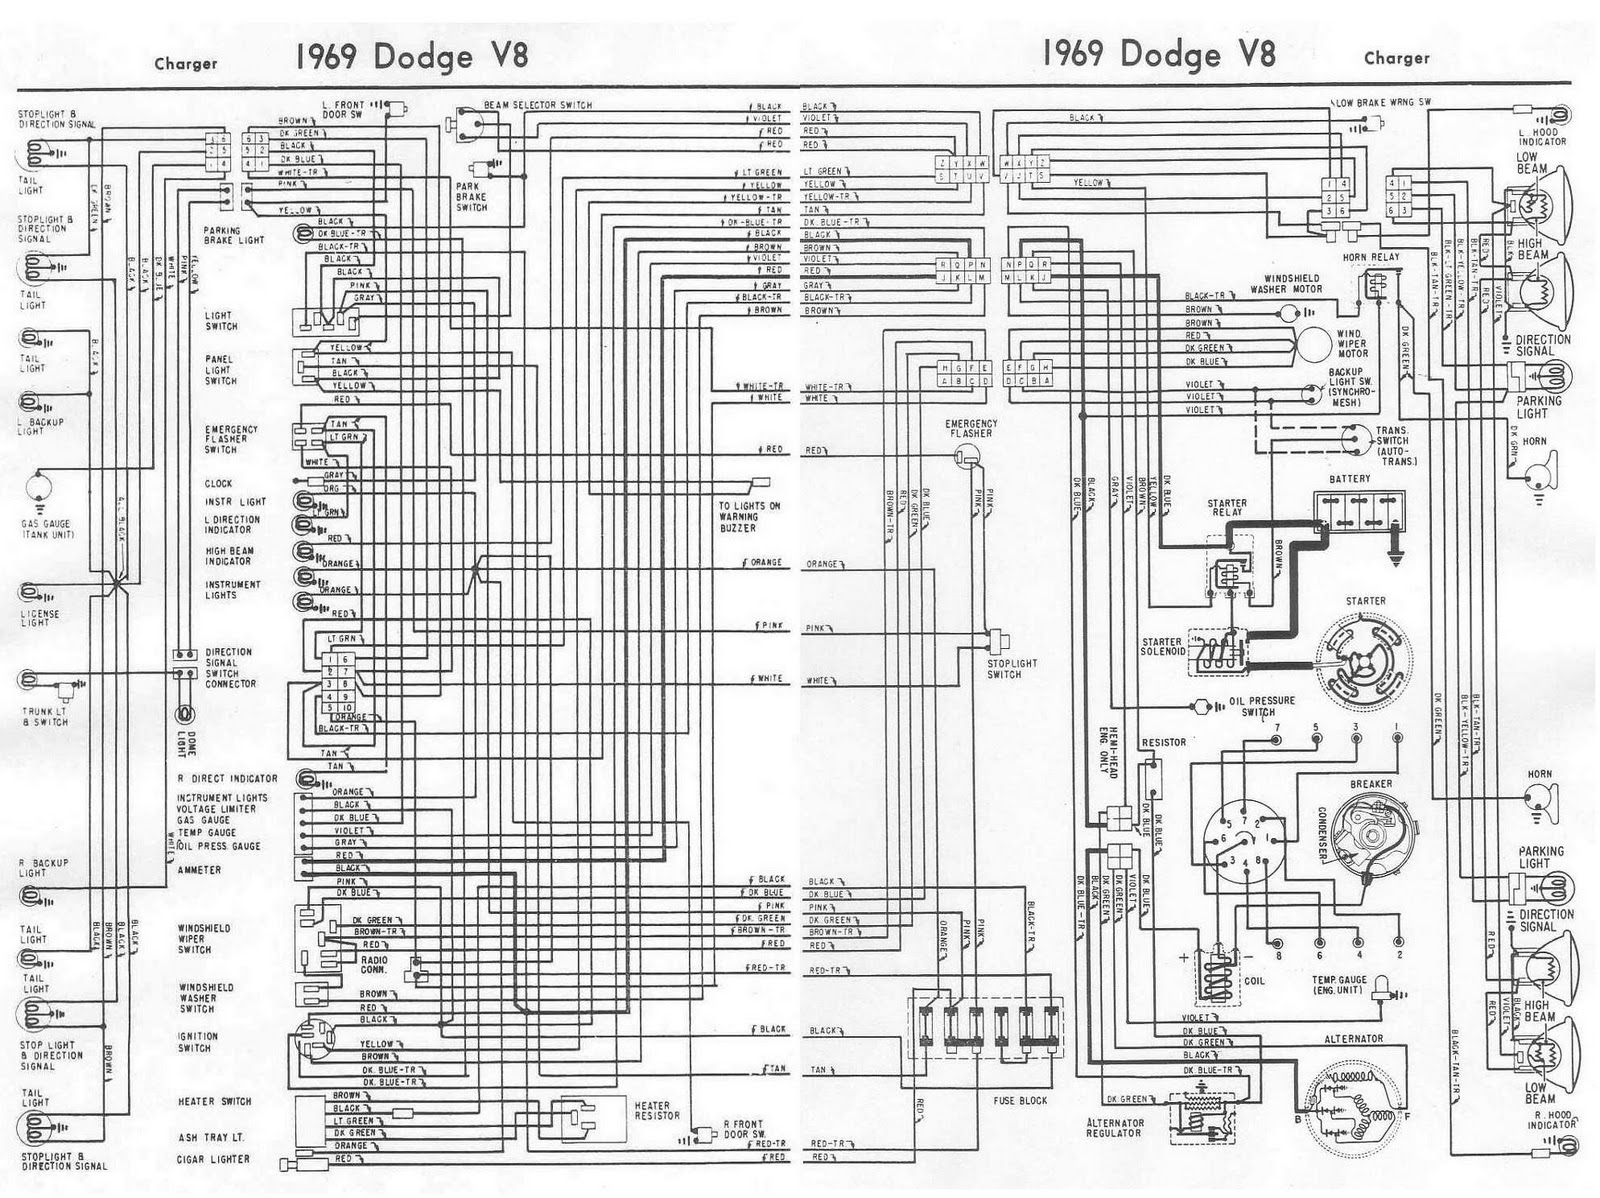 70 super bee wiring diagram 1969 super bee wiring diagram 69 roadrunner wiring diagram - wiring diagram